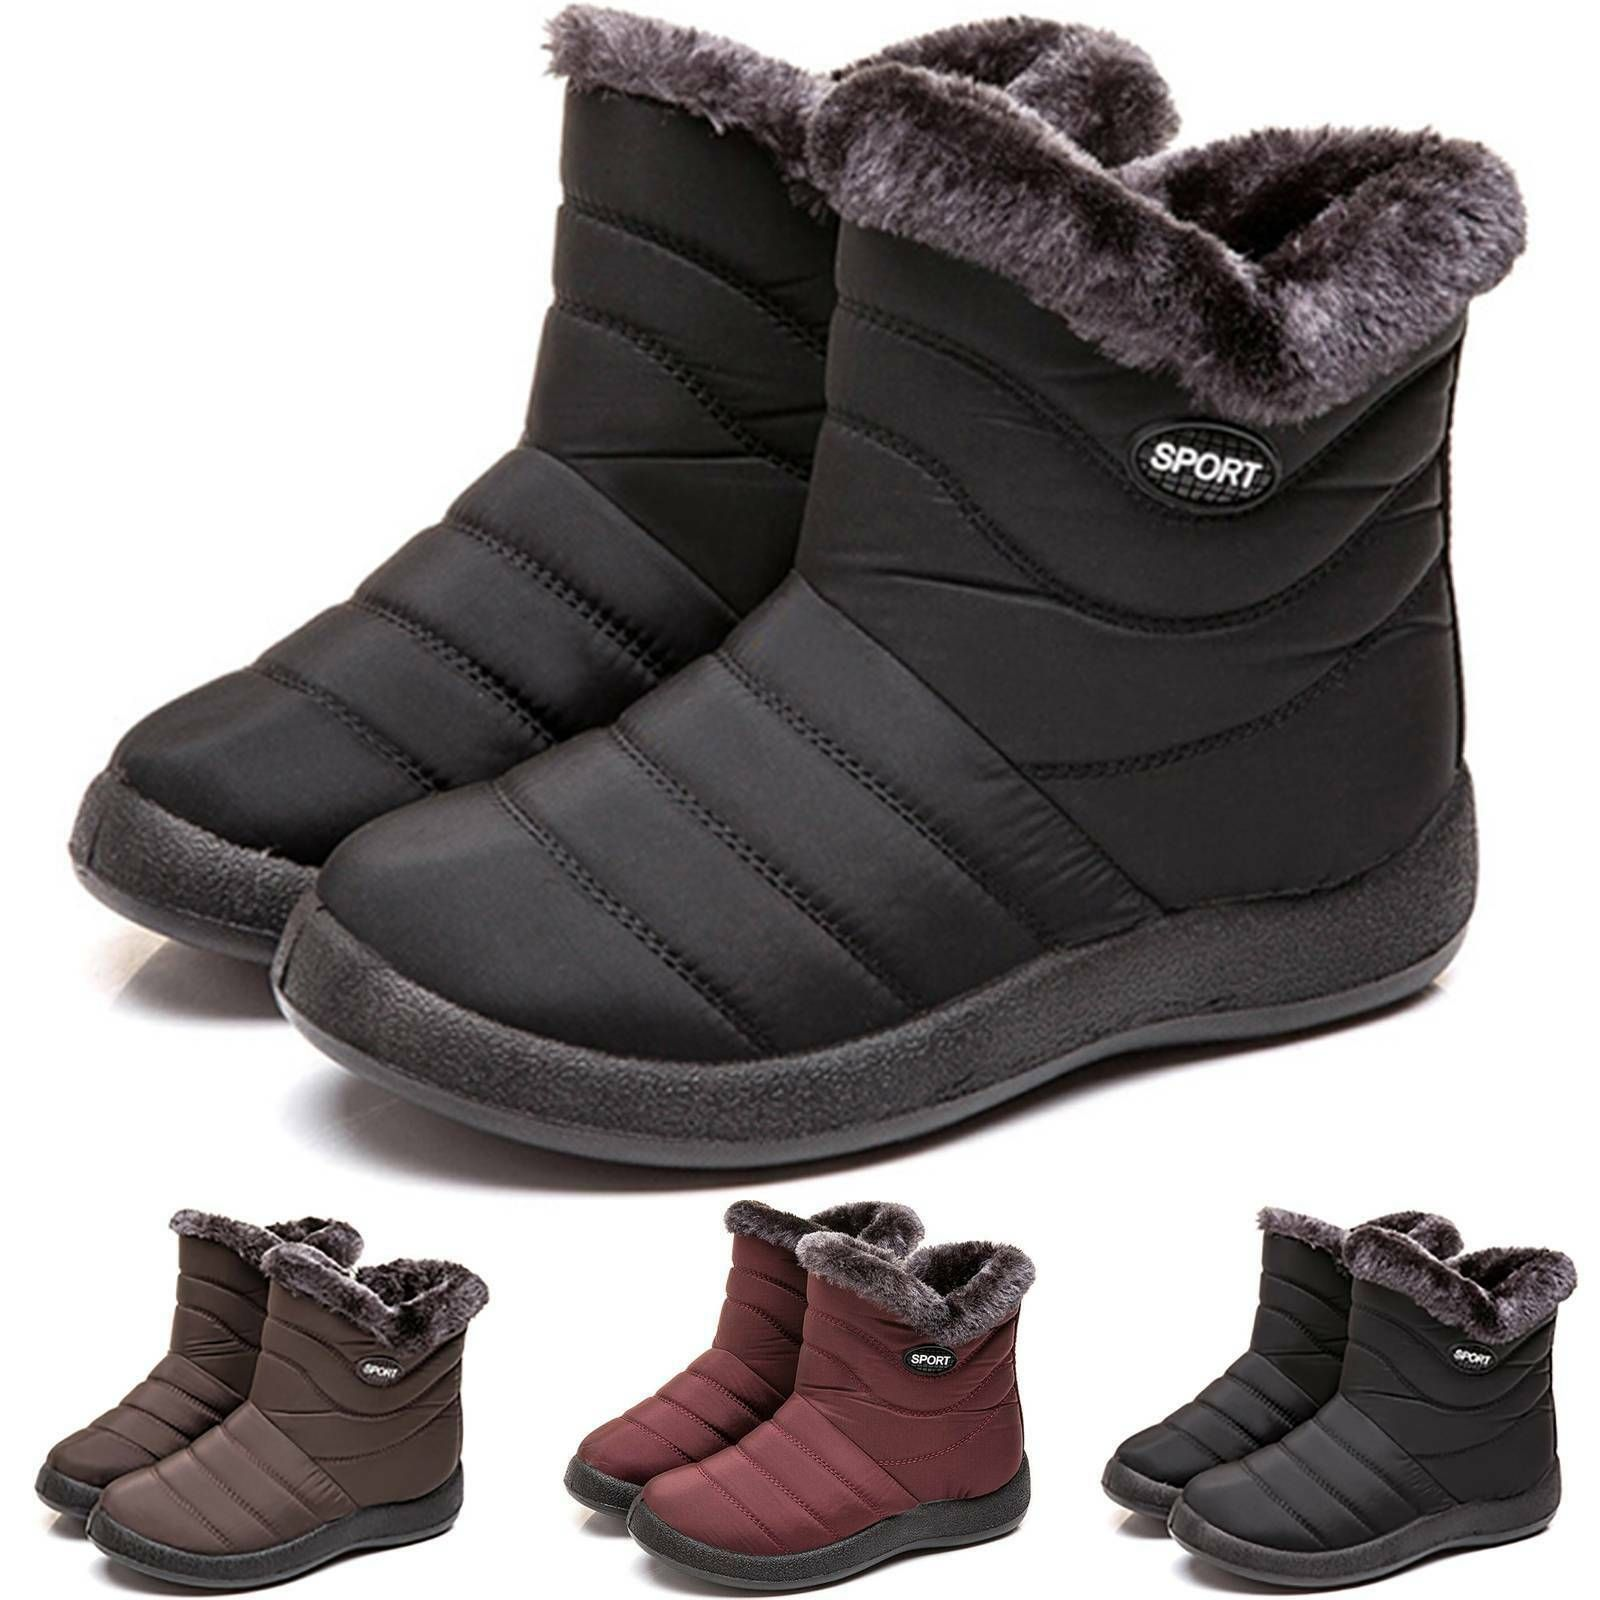 Damen Stiefeletten Warm Gefuttert Thermo Wasserdicht Stiefel Boots Winterschuhe Stiefeletten Ideas Of Stiefeletten St Cozy Shoes Boots Waterproof Sneakers